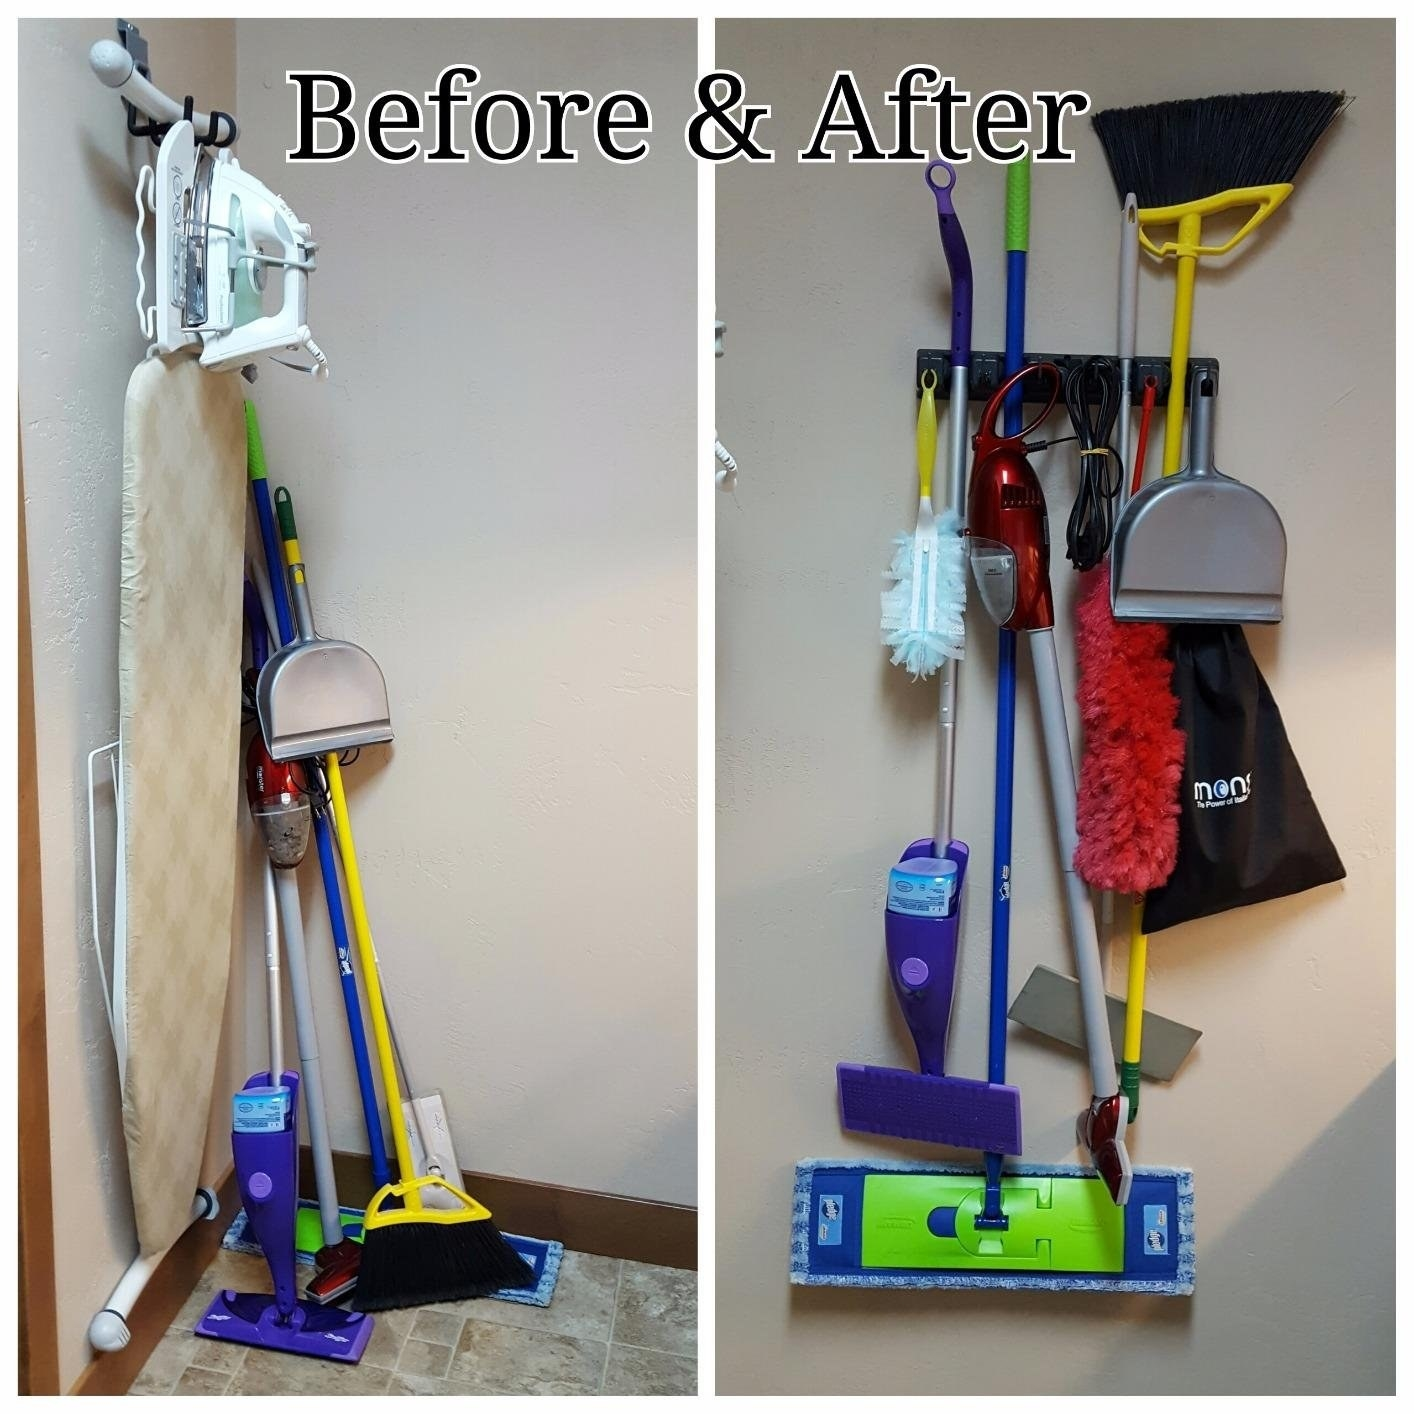 reviewer before and after of their broom and appliances on the floor, then held up by this organizer